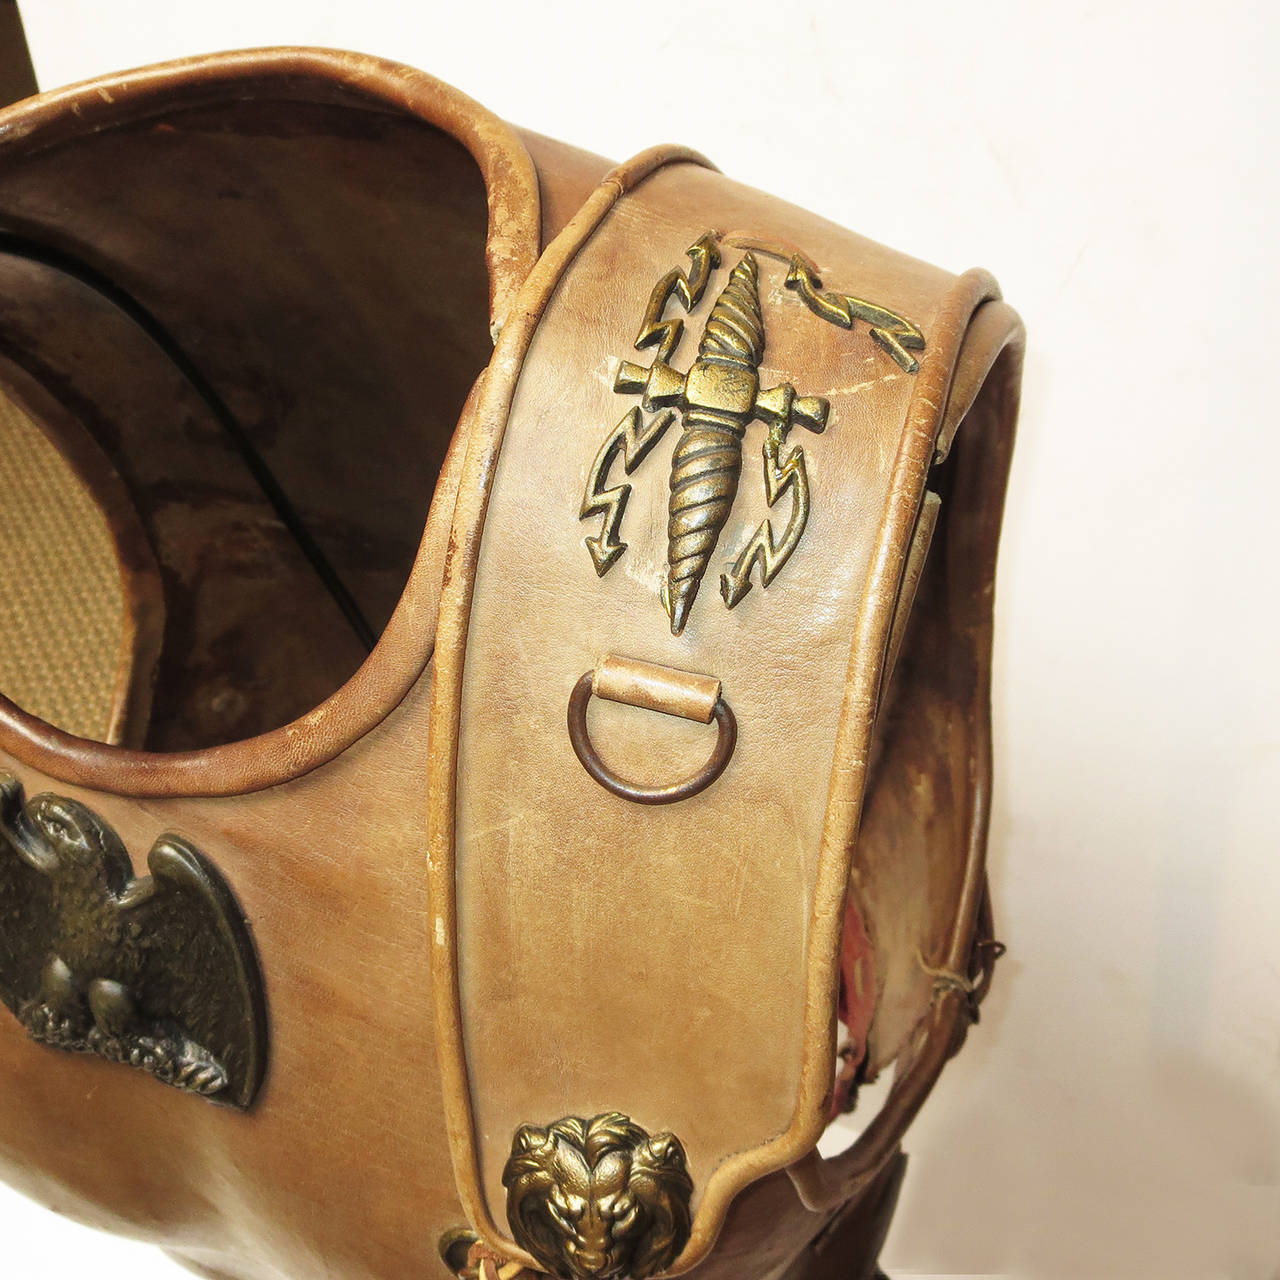 American Telly Savalas Leather Chest Plate Prop from